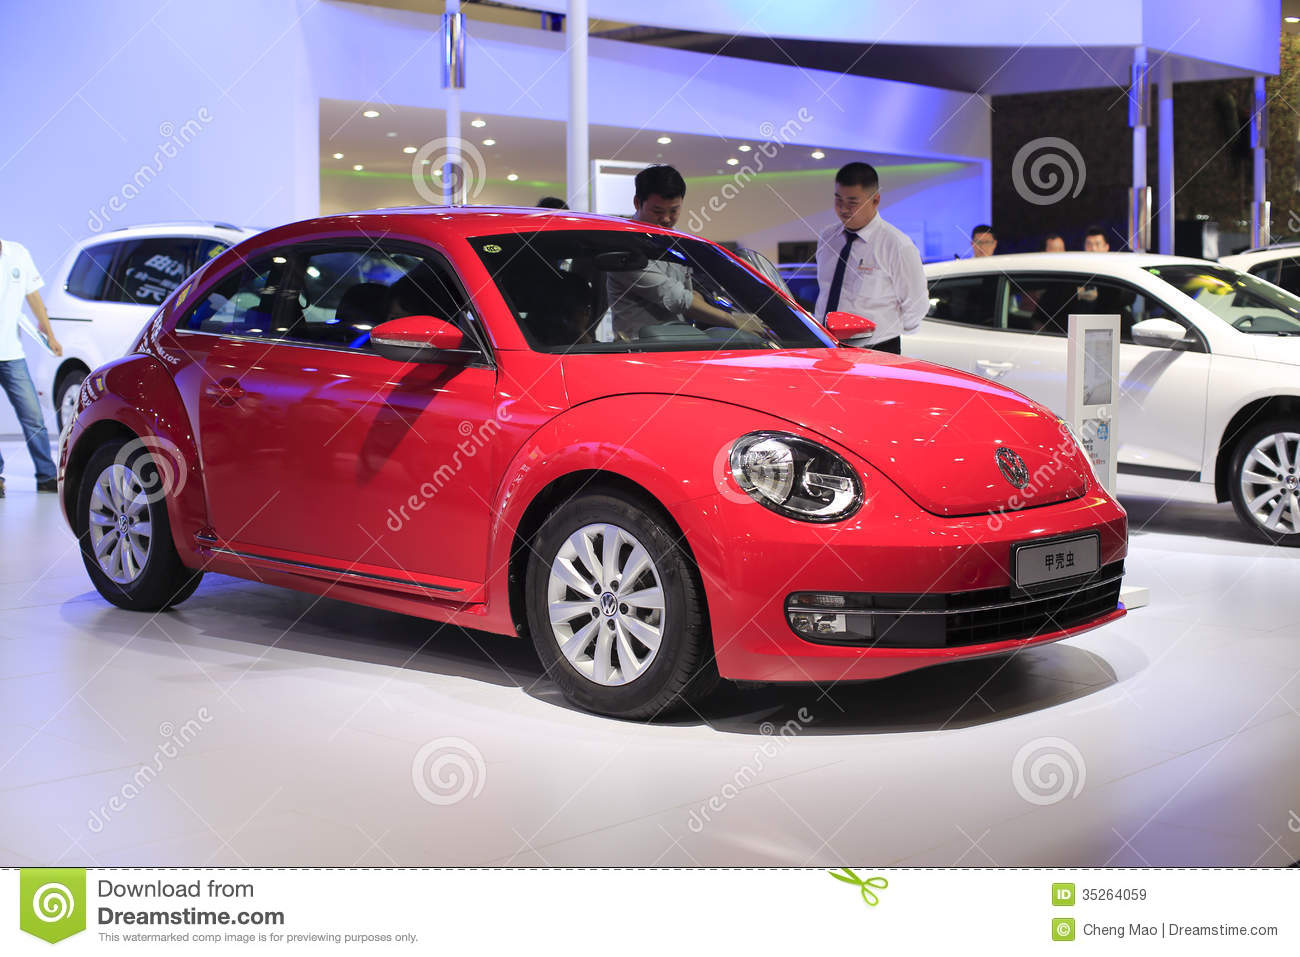 convertible south wal beetle llantwit farde red cars used img cabriolet volkswagen tdi